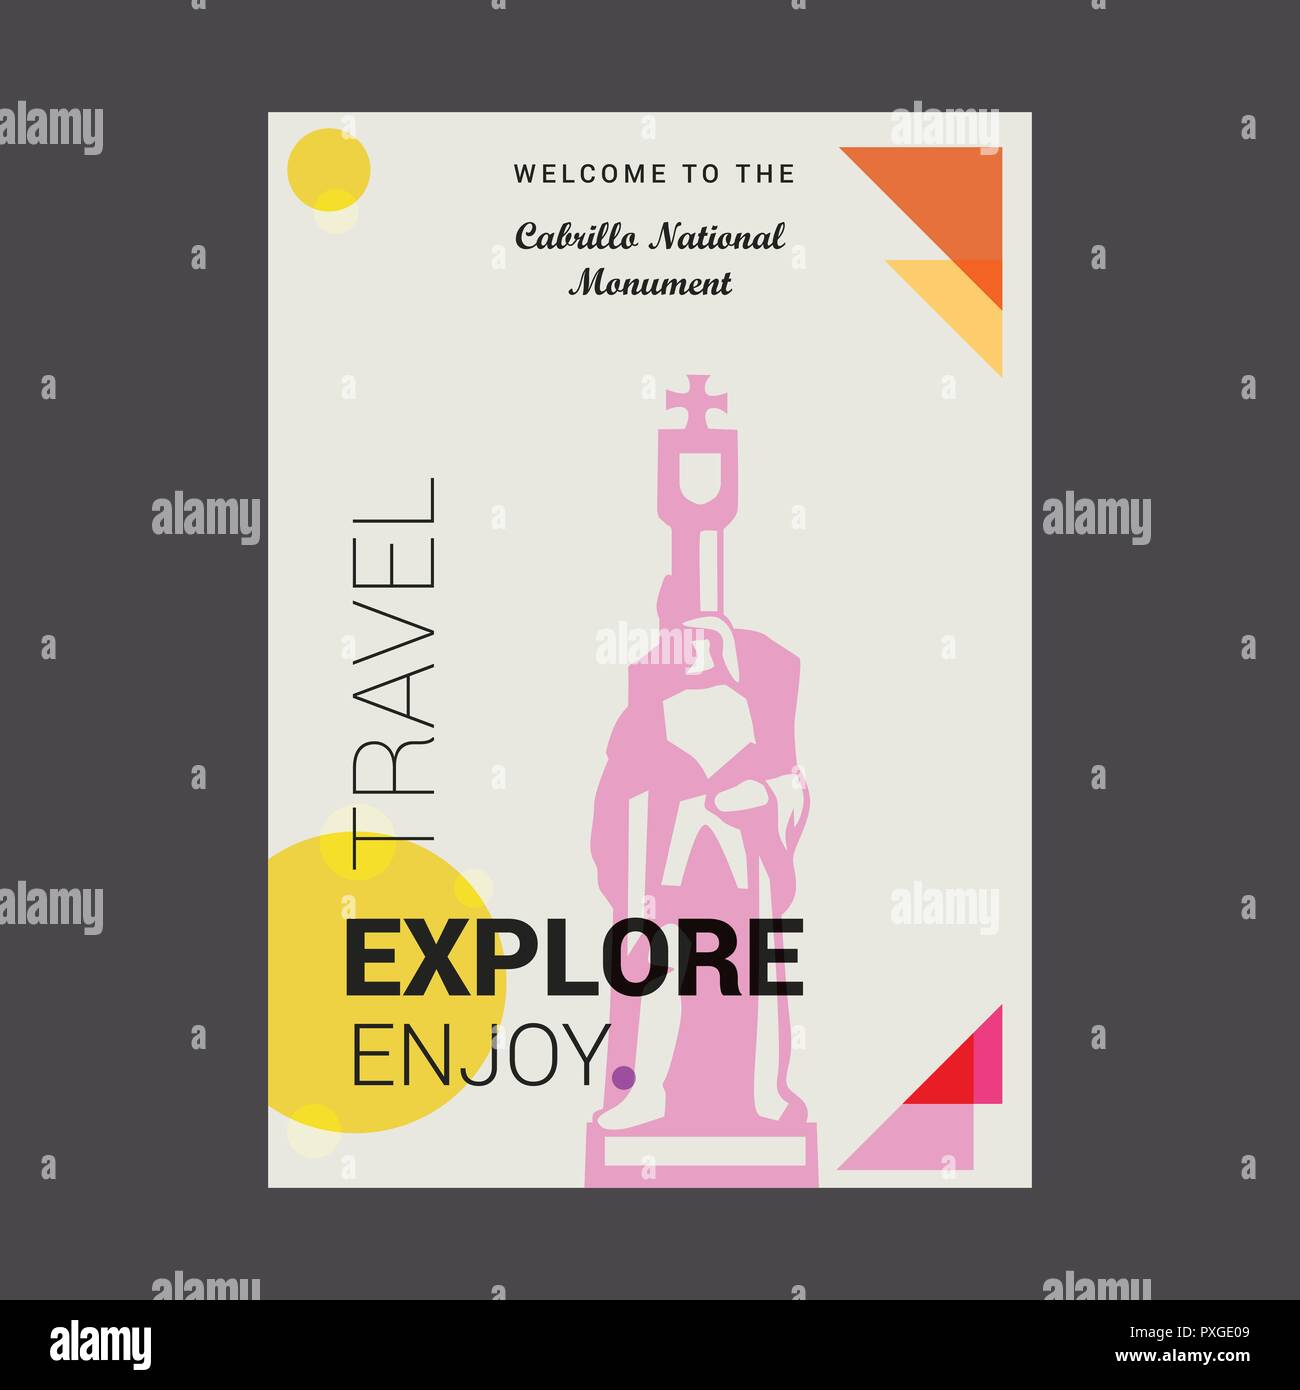 Welcome to The Cabrillo National Monument AZ, USA Explore, Travel Enjoy Poster Template - Stock Vector